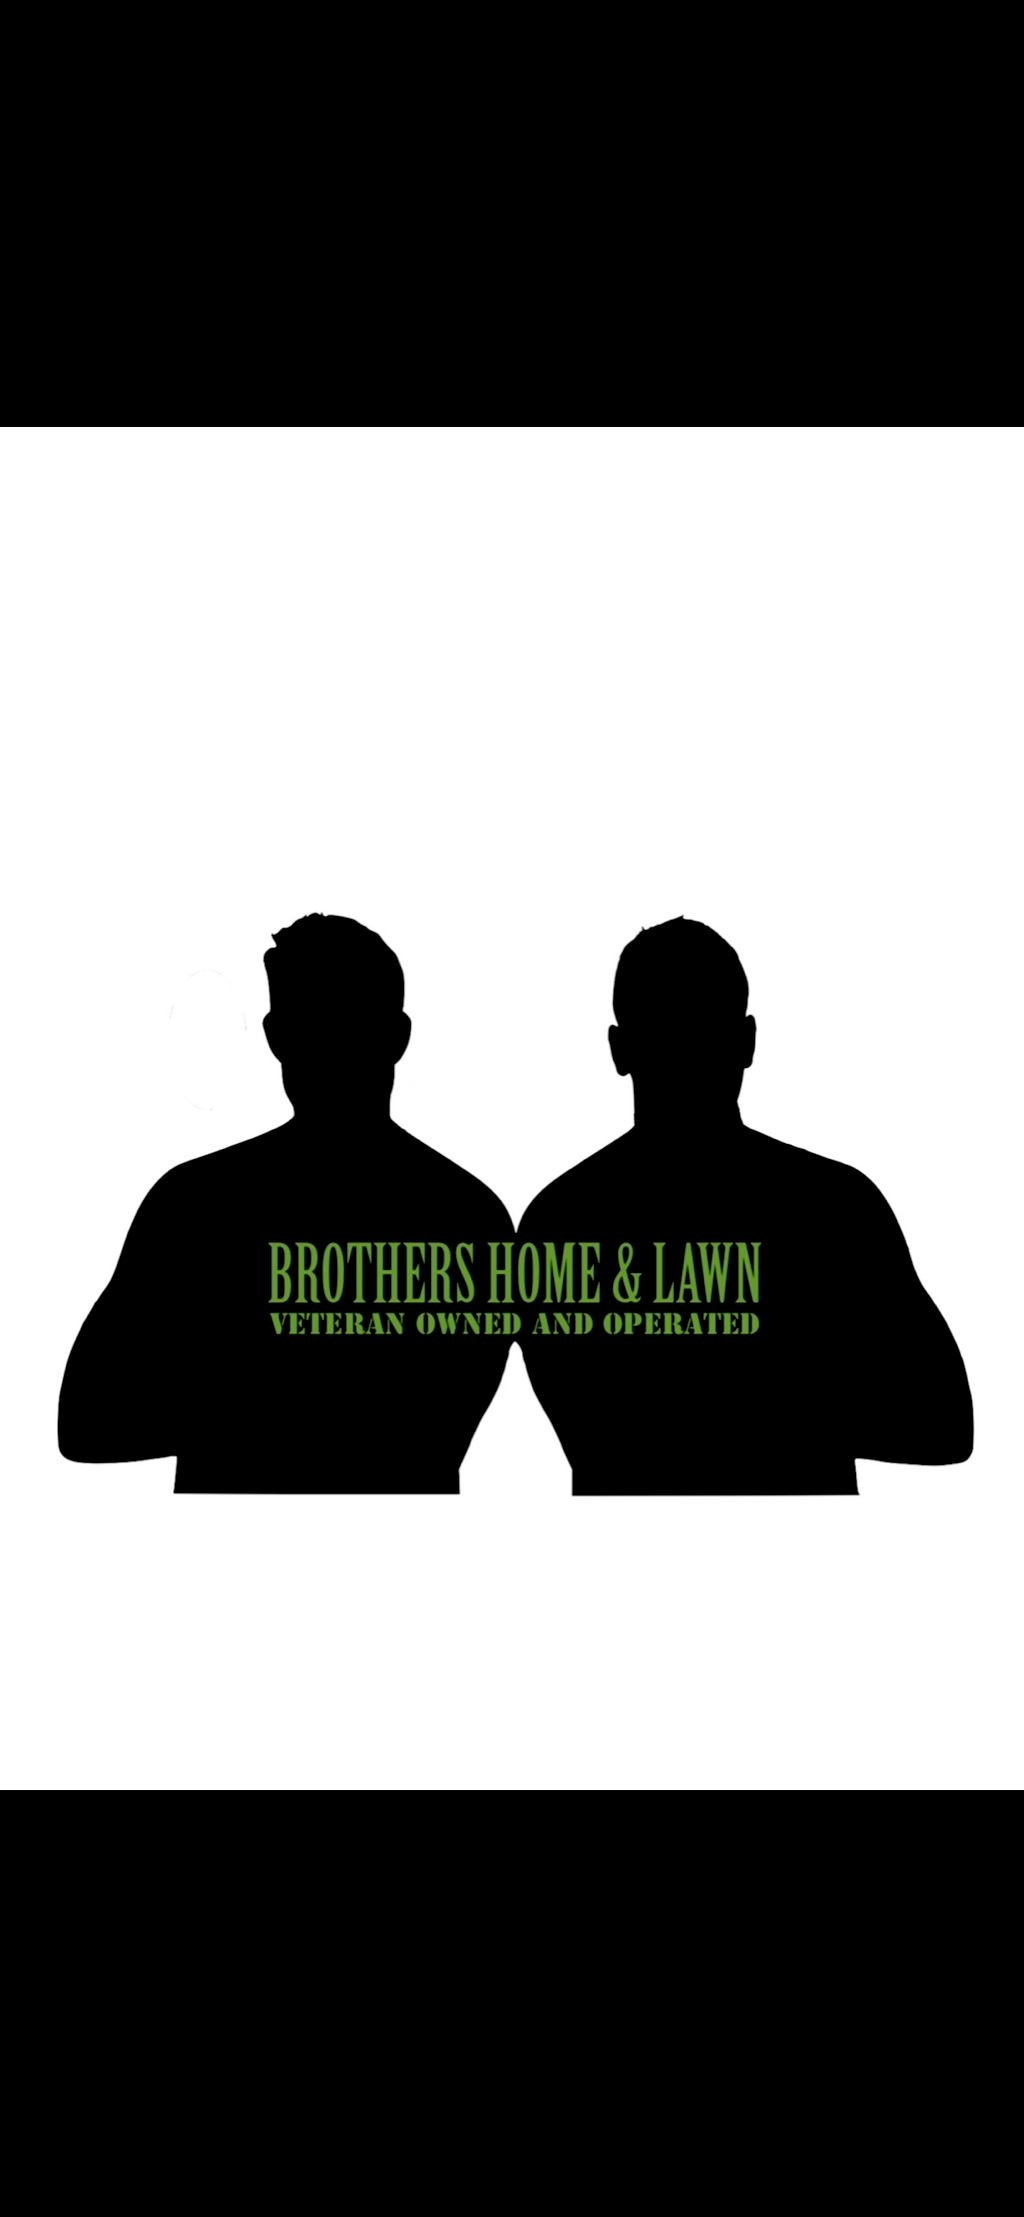 Brothers Home and Lawn